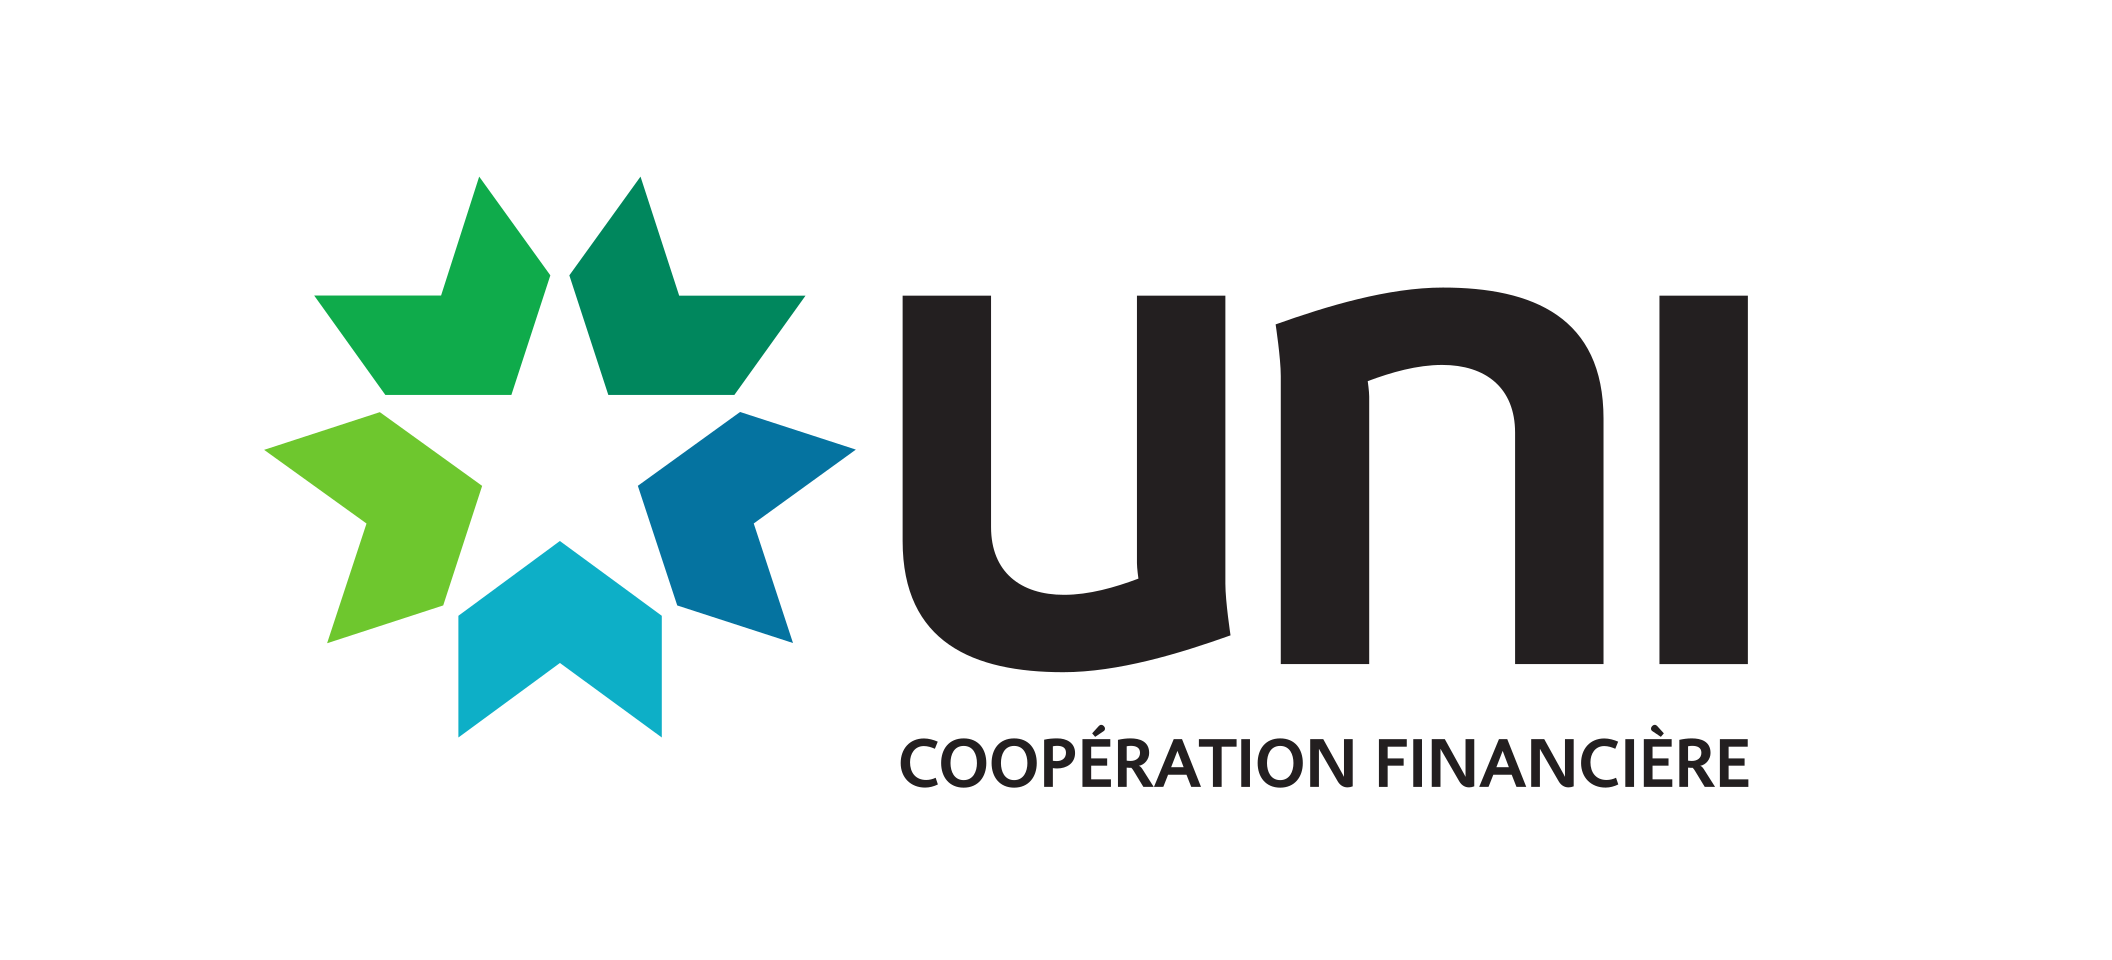 UNI-CooperationFinanciere